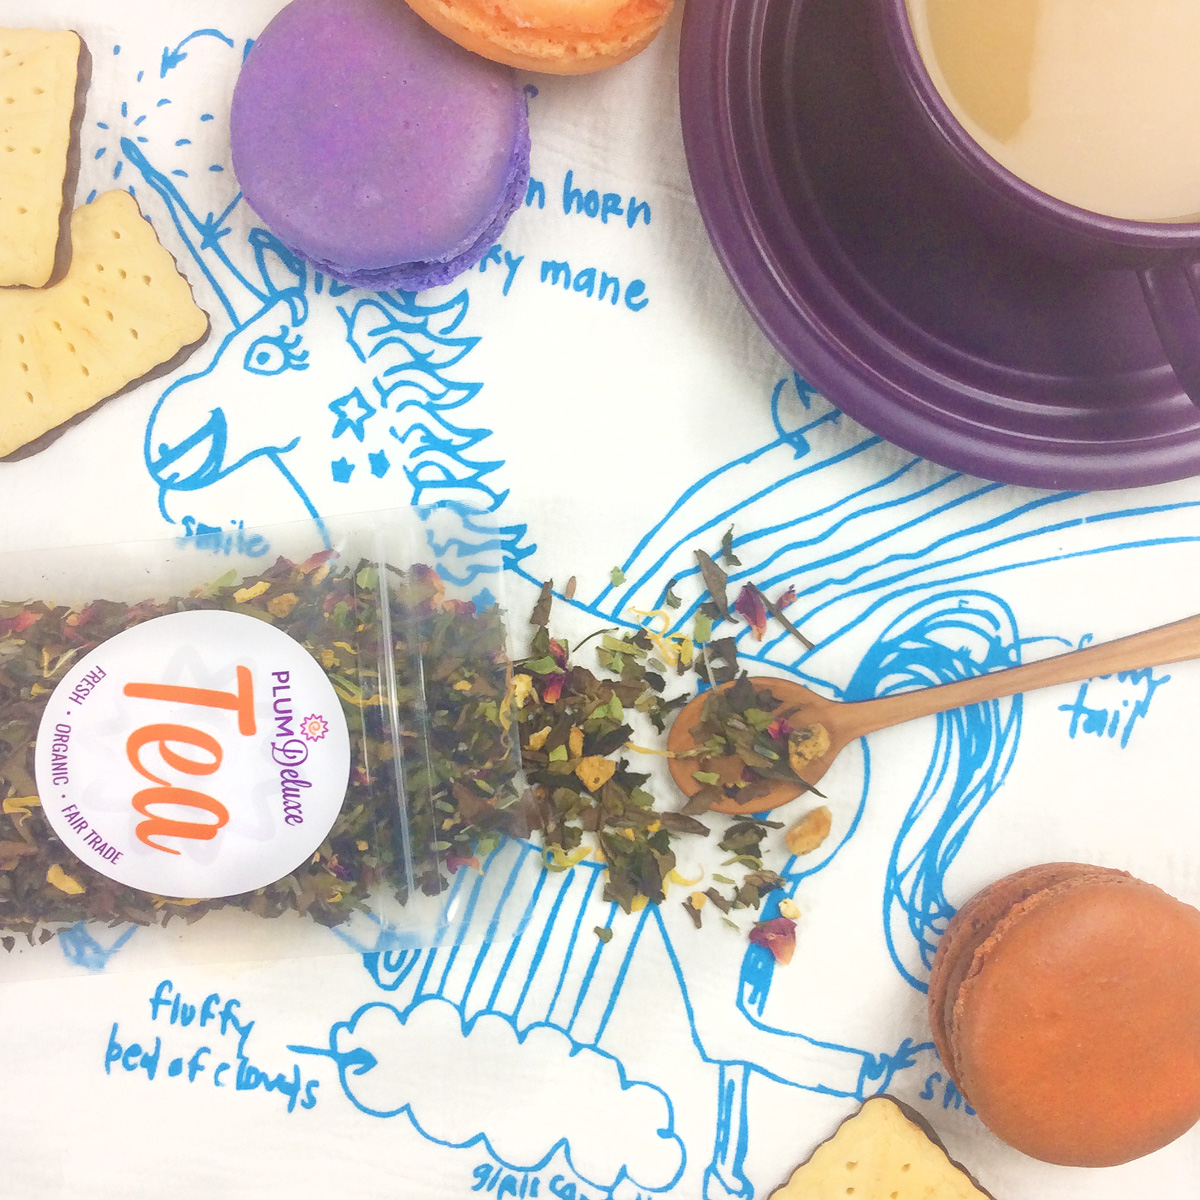 Overhead view of an open bag of Plum Deluxe loose leaf tea, cherrywood spoon, purple teacup and saucer, and macarons on a unicorn print tea towel.